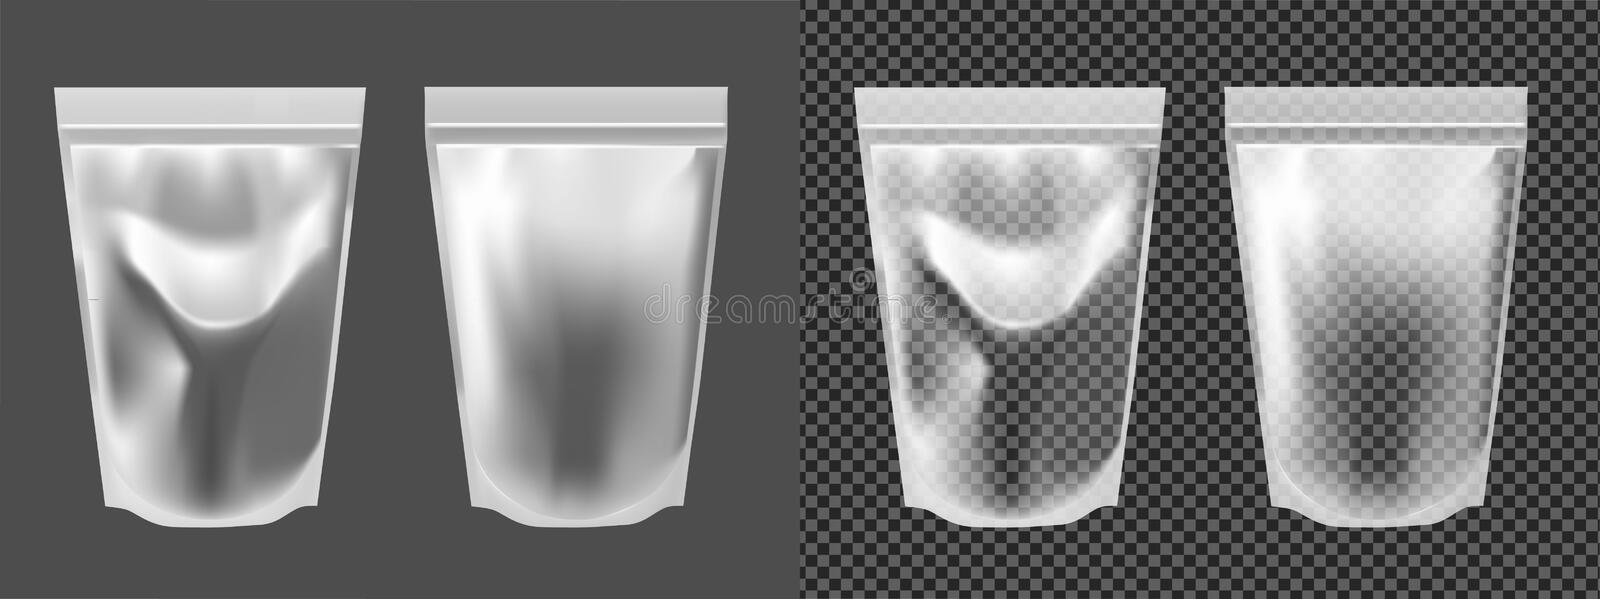 Foil transparent packaging for snacks, food, chips, sugar and spices.  stock illustration